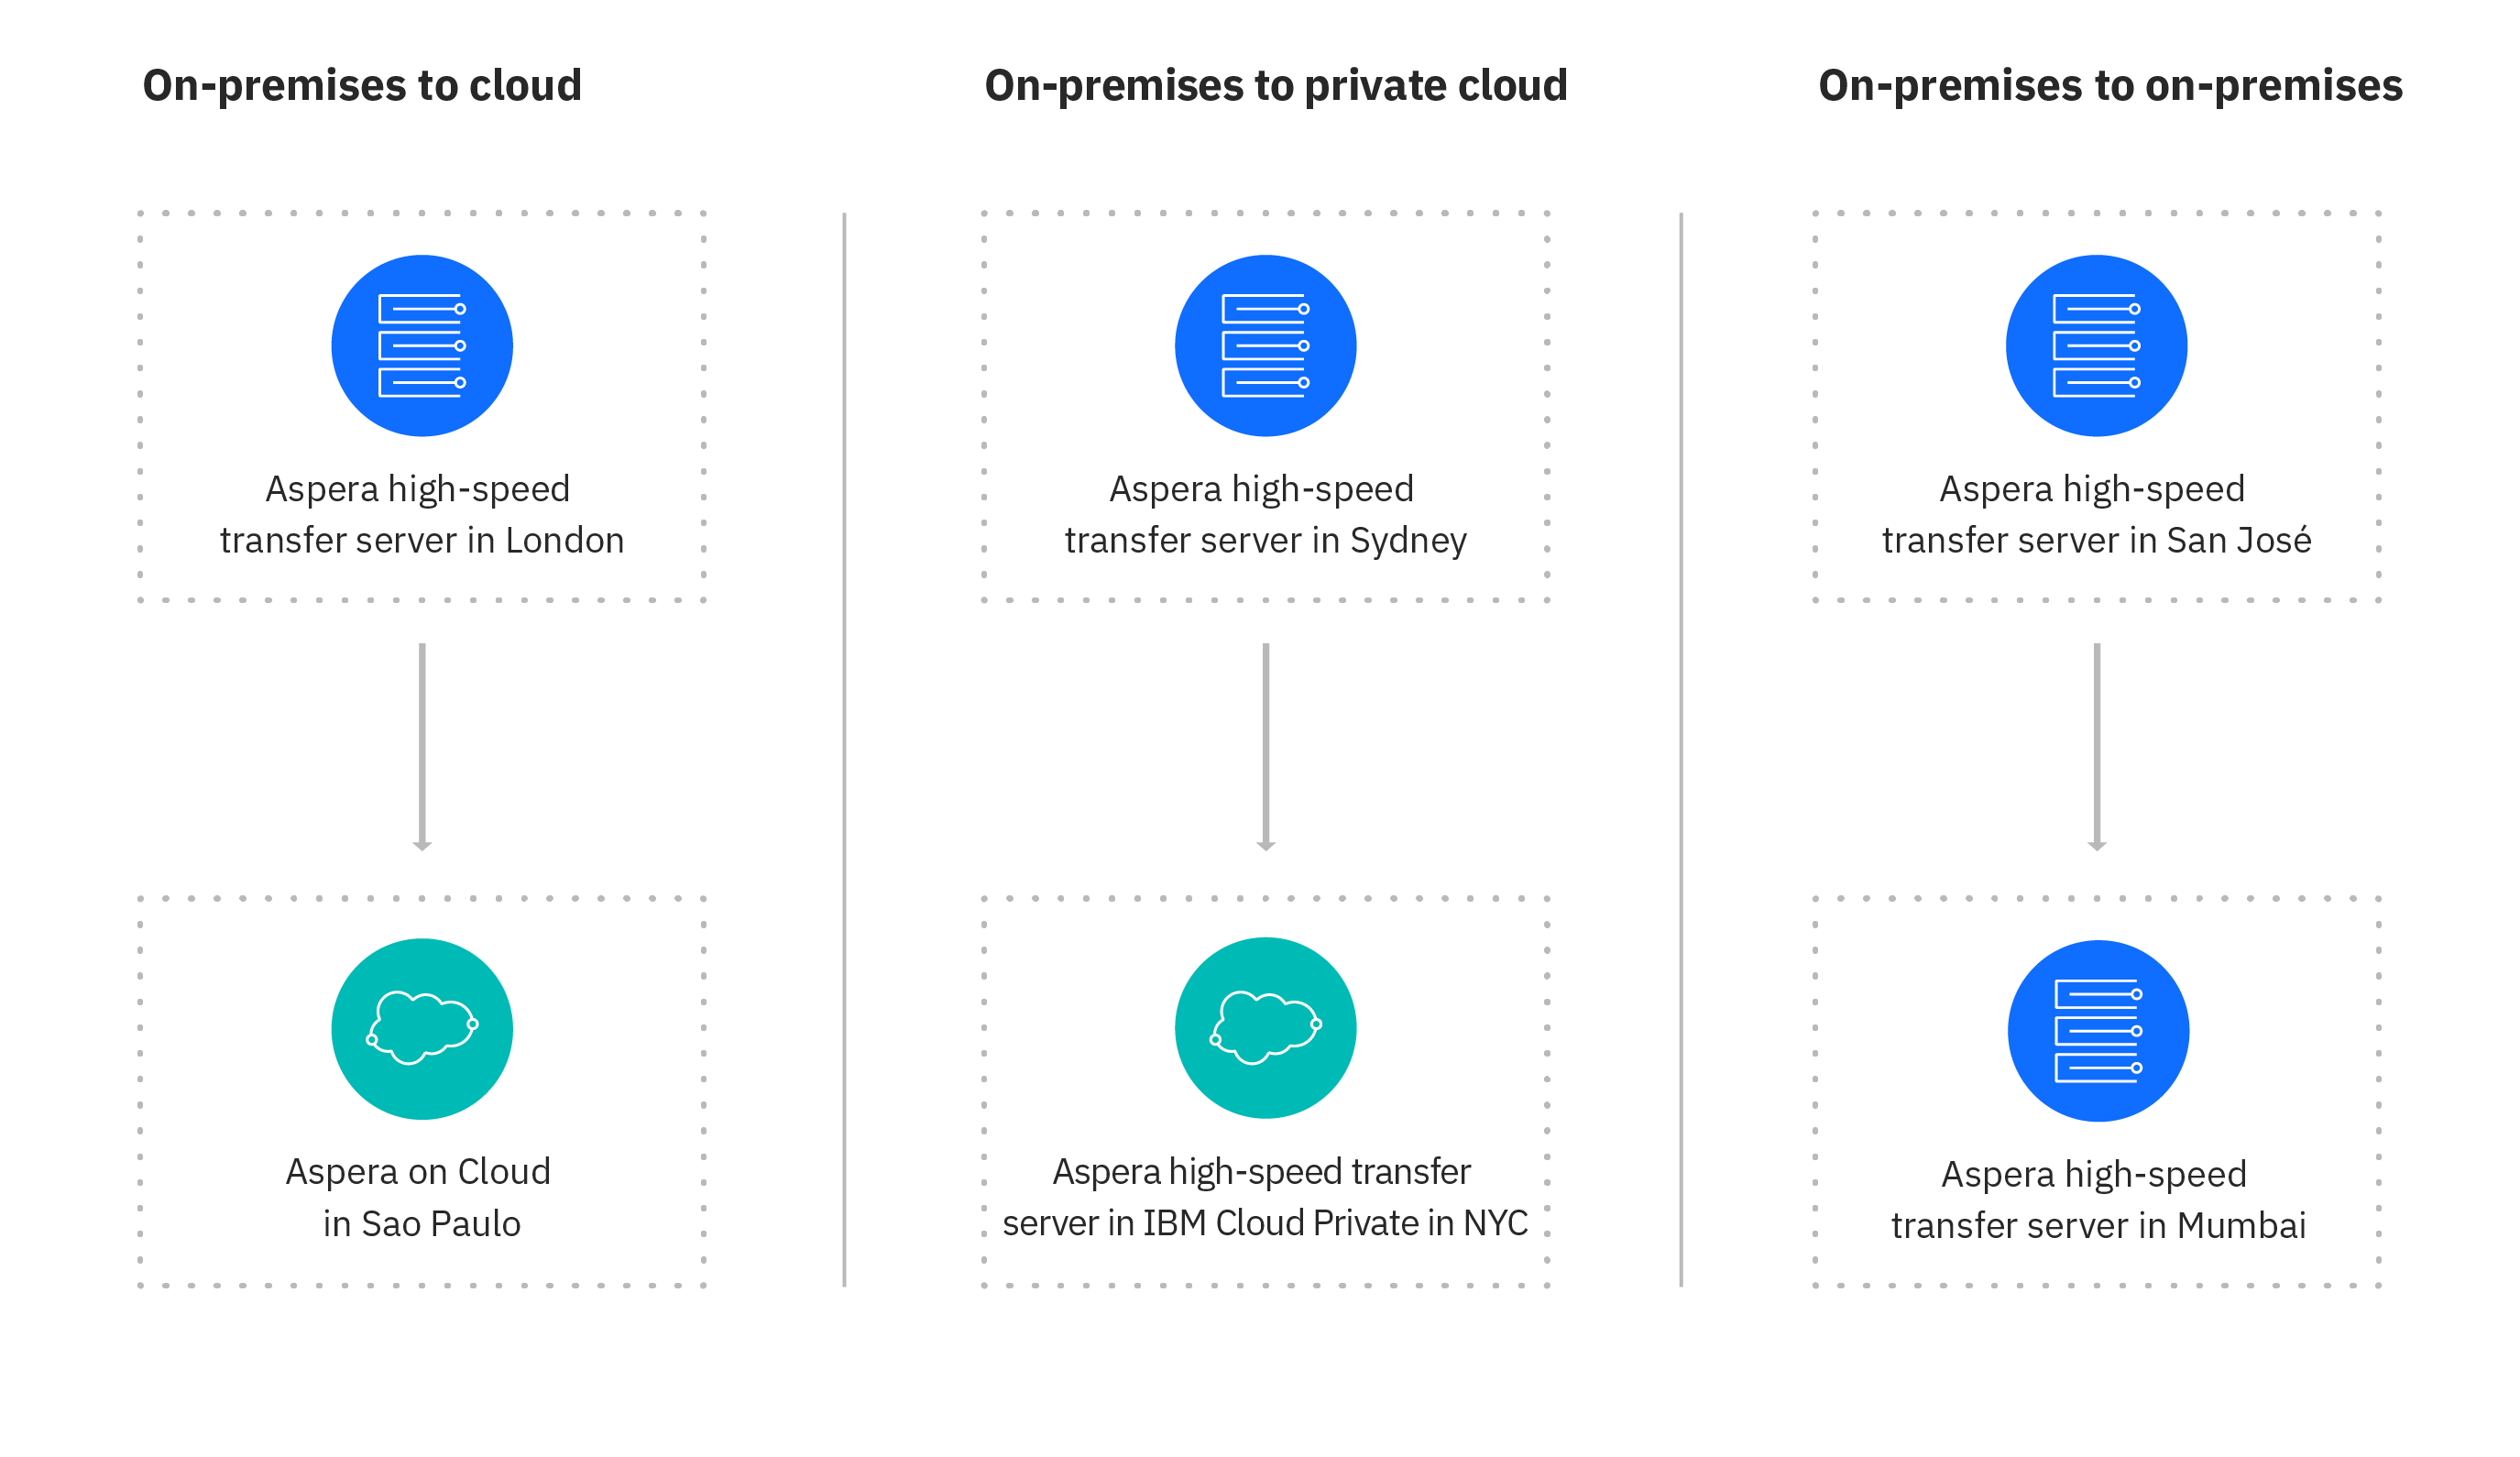 Diagram showing Aspera data migration from on premises to cloud, private cloud, or back to on premises